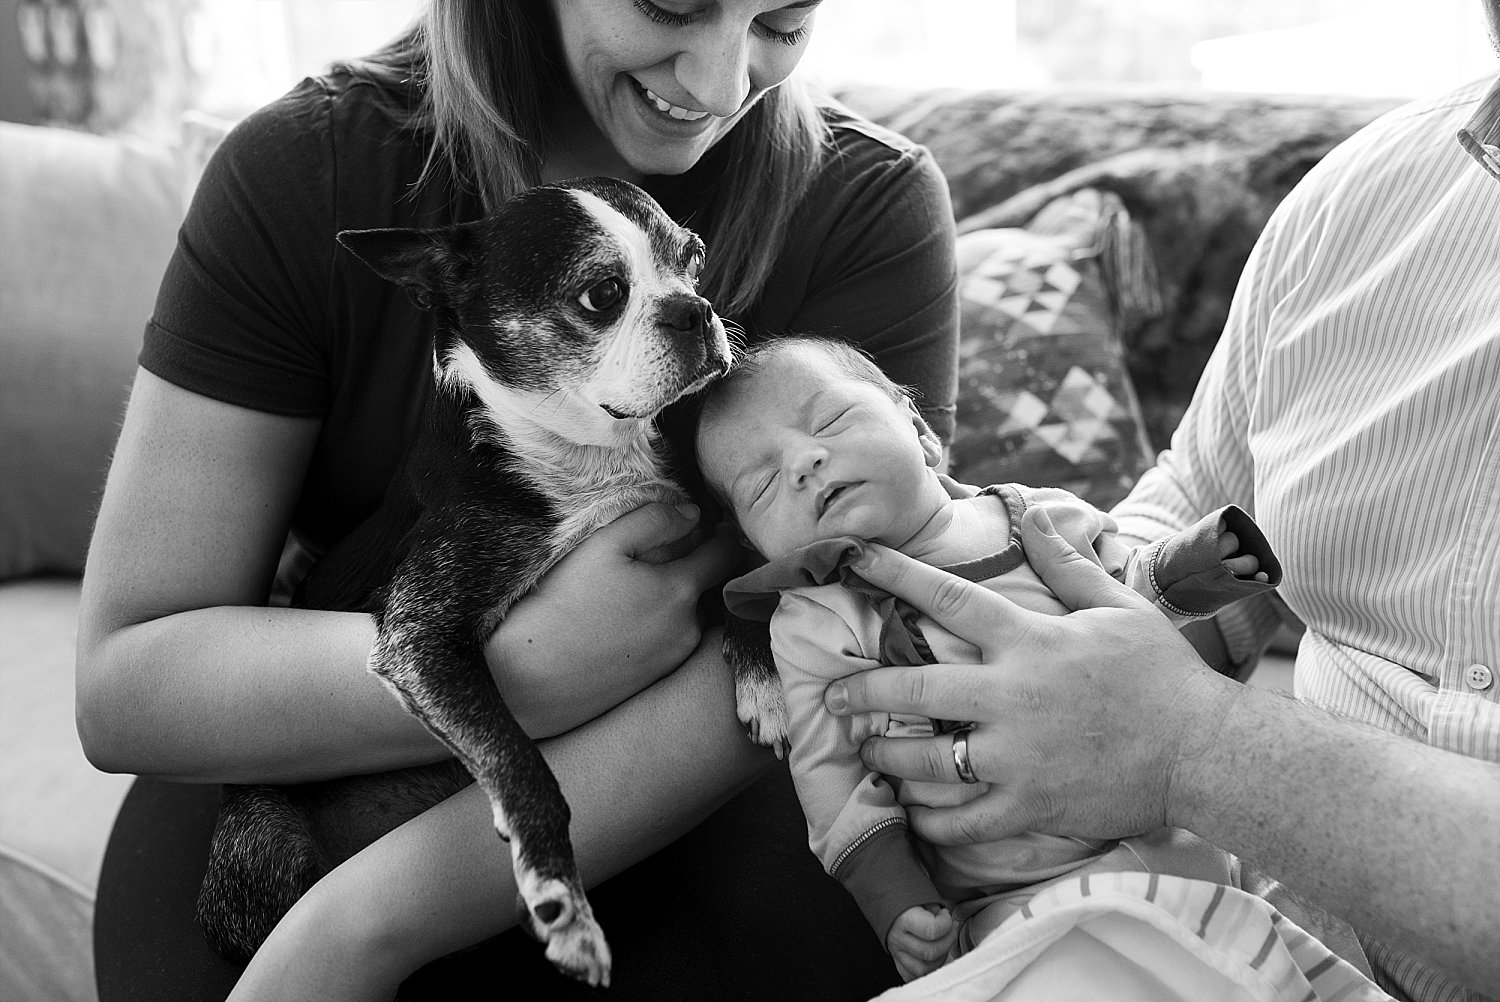 Connecticut baby with their family dog during newborn photography